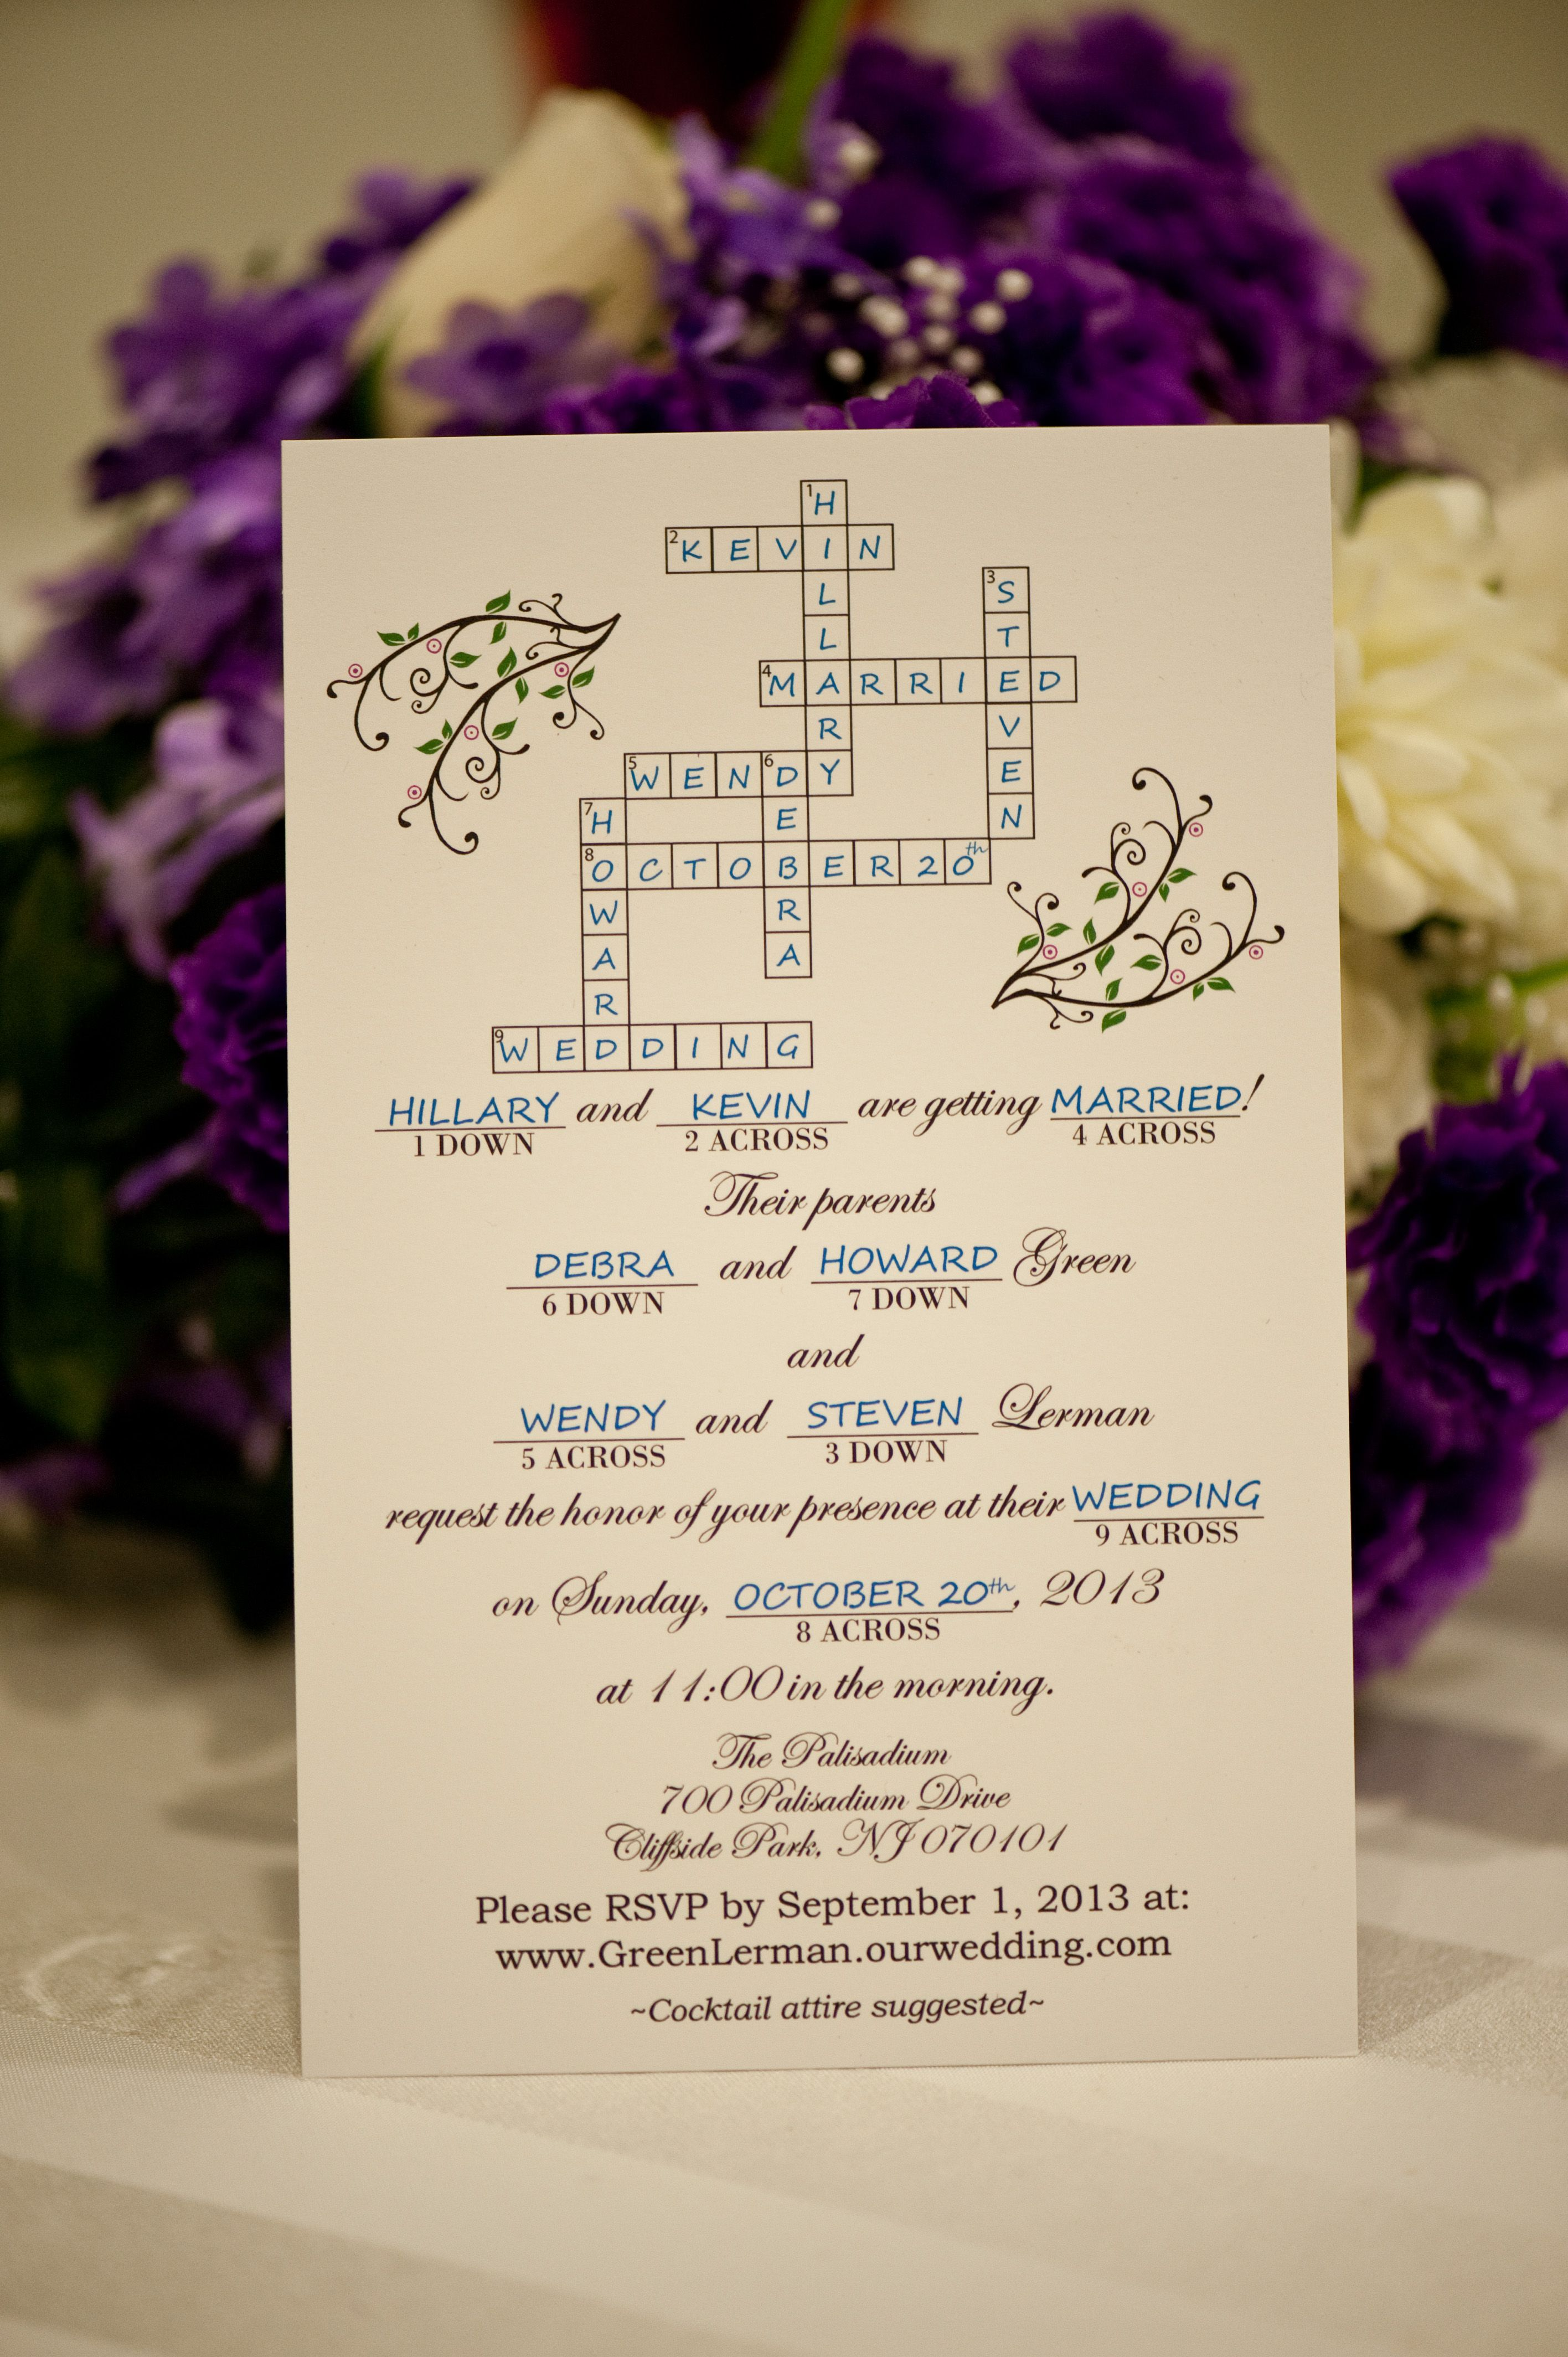 crossword wedding invitations made in illustrator and printed by vistaprint - Nerdy Wedding Invitations